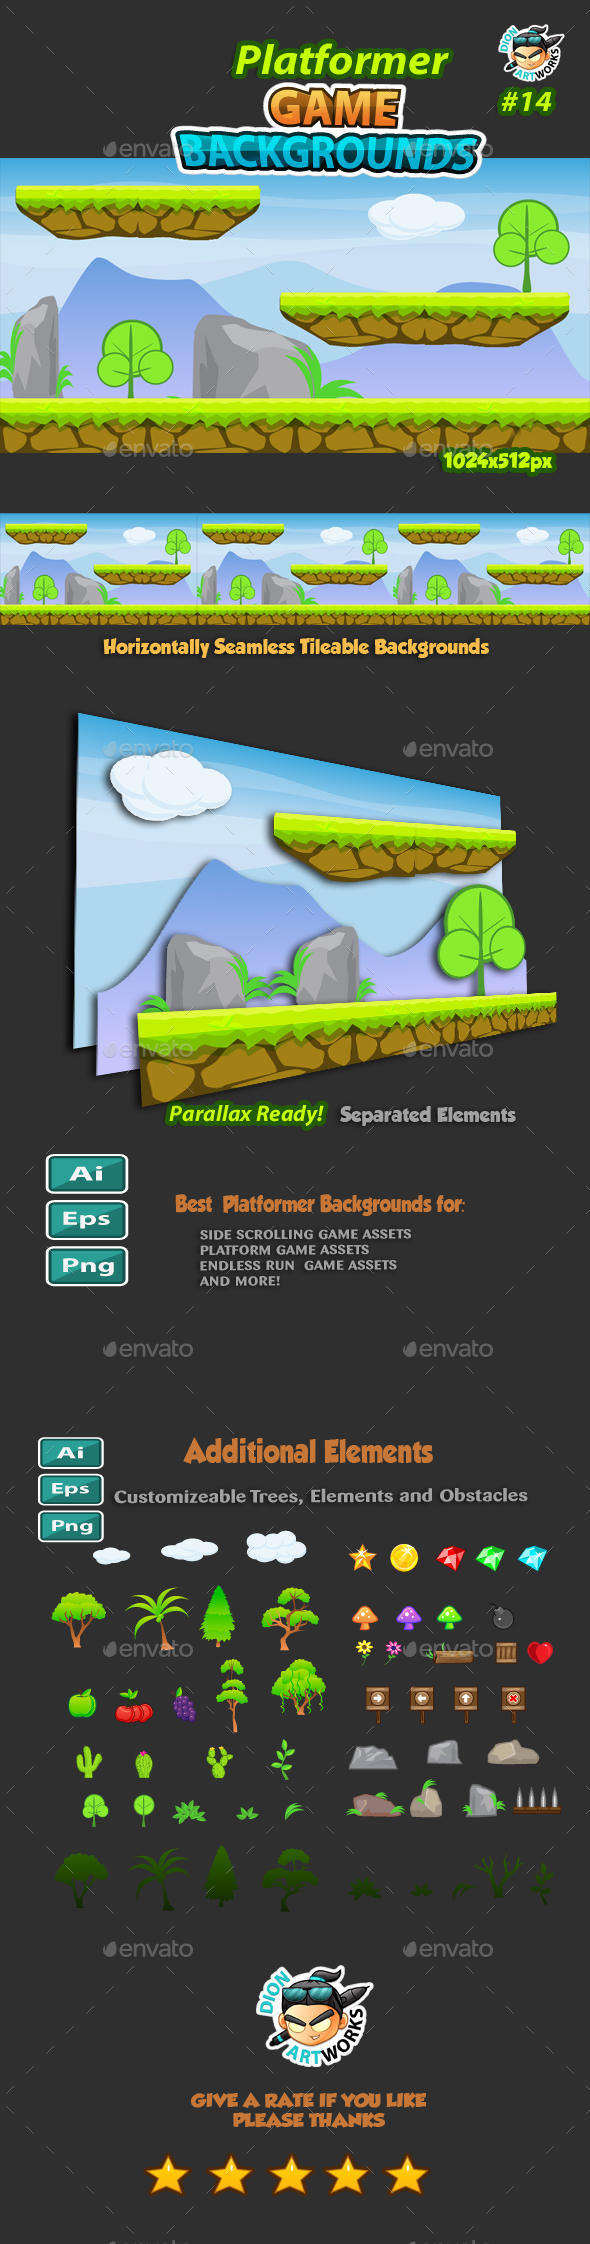 Platformer Game Background 14 (Backgrounds)